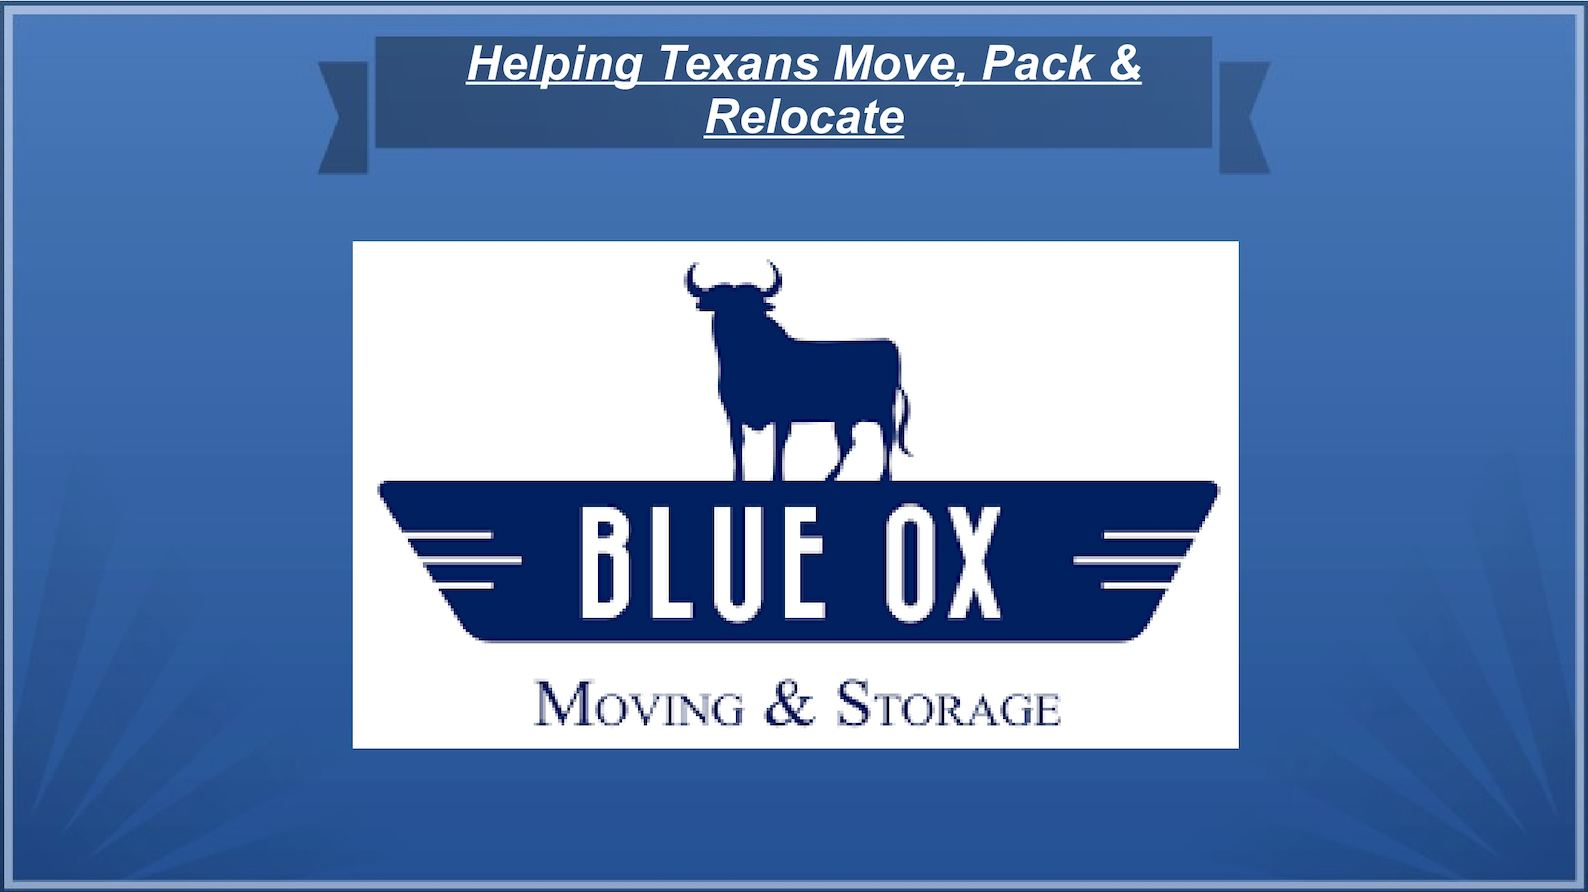 Moving And Storage Companies >> Calameo Moving Companies In The Woodlands Tx Blue Ox